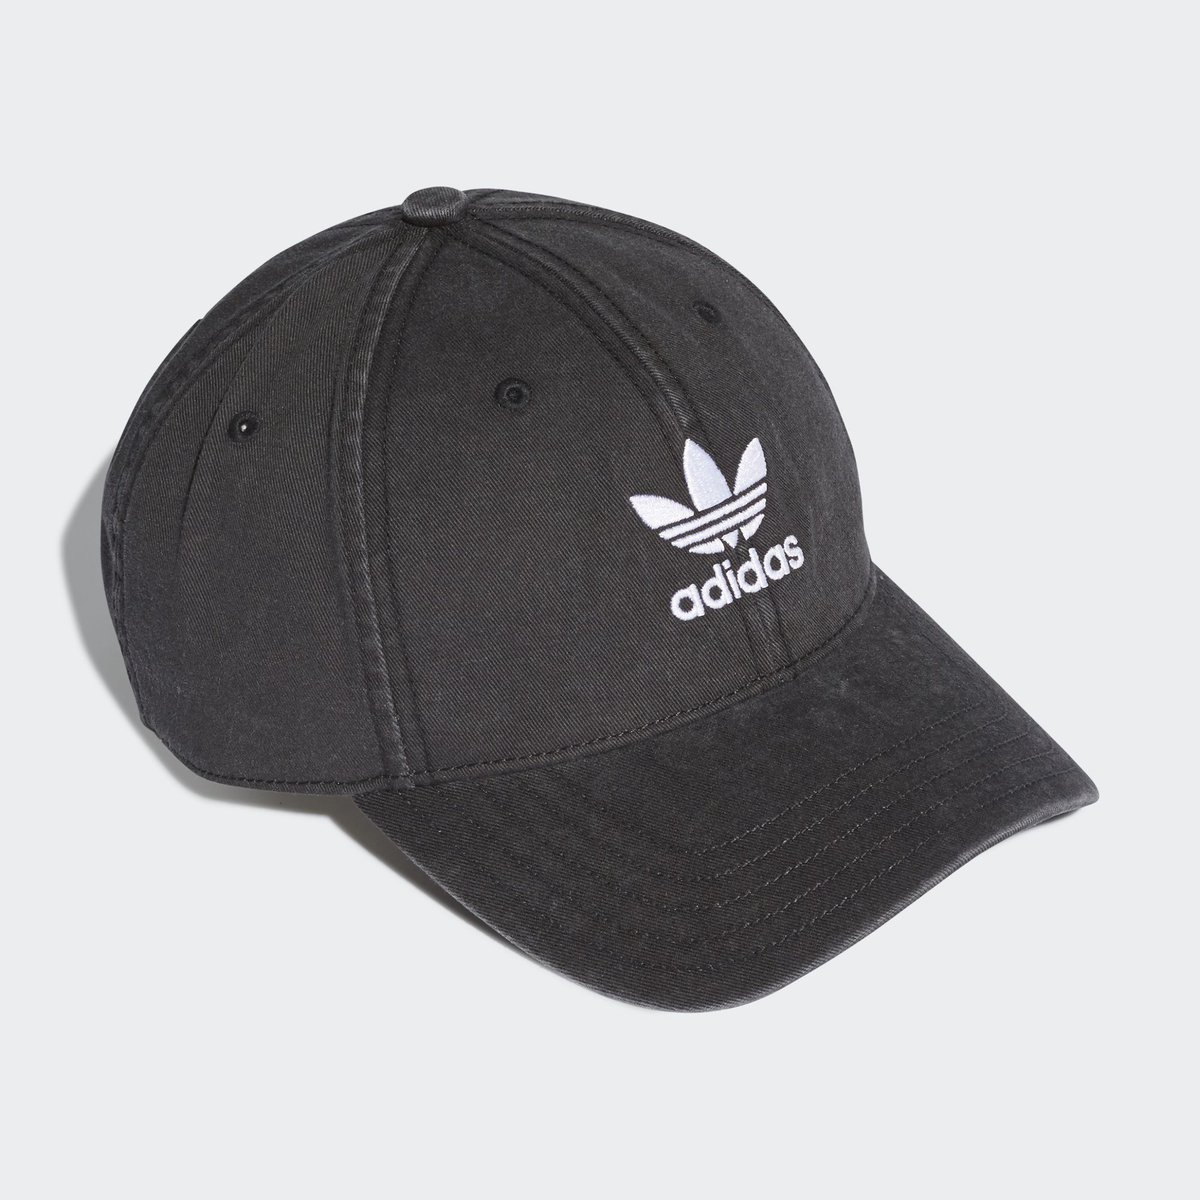 7bb9f2e944e Now available on  adidas US. adidas Trefoil Washed 6-Panel. —   http   bit.ly 2UIeF3X pic.twitter.com yQz7j3b1LZ